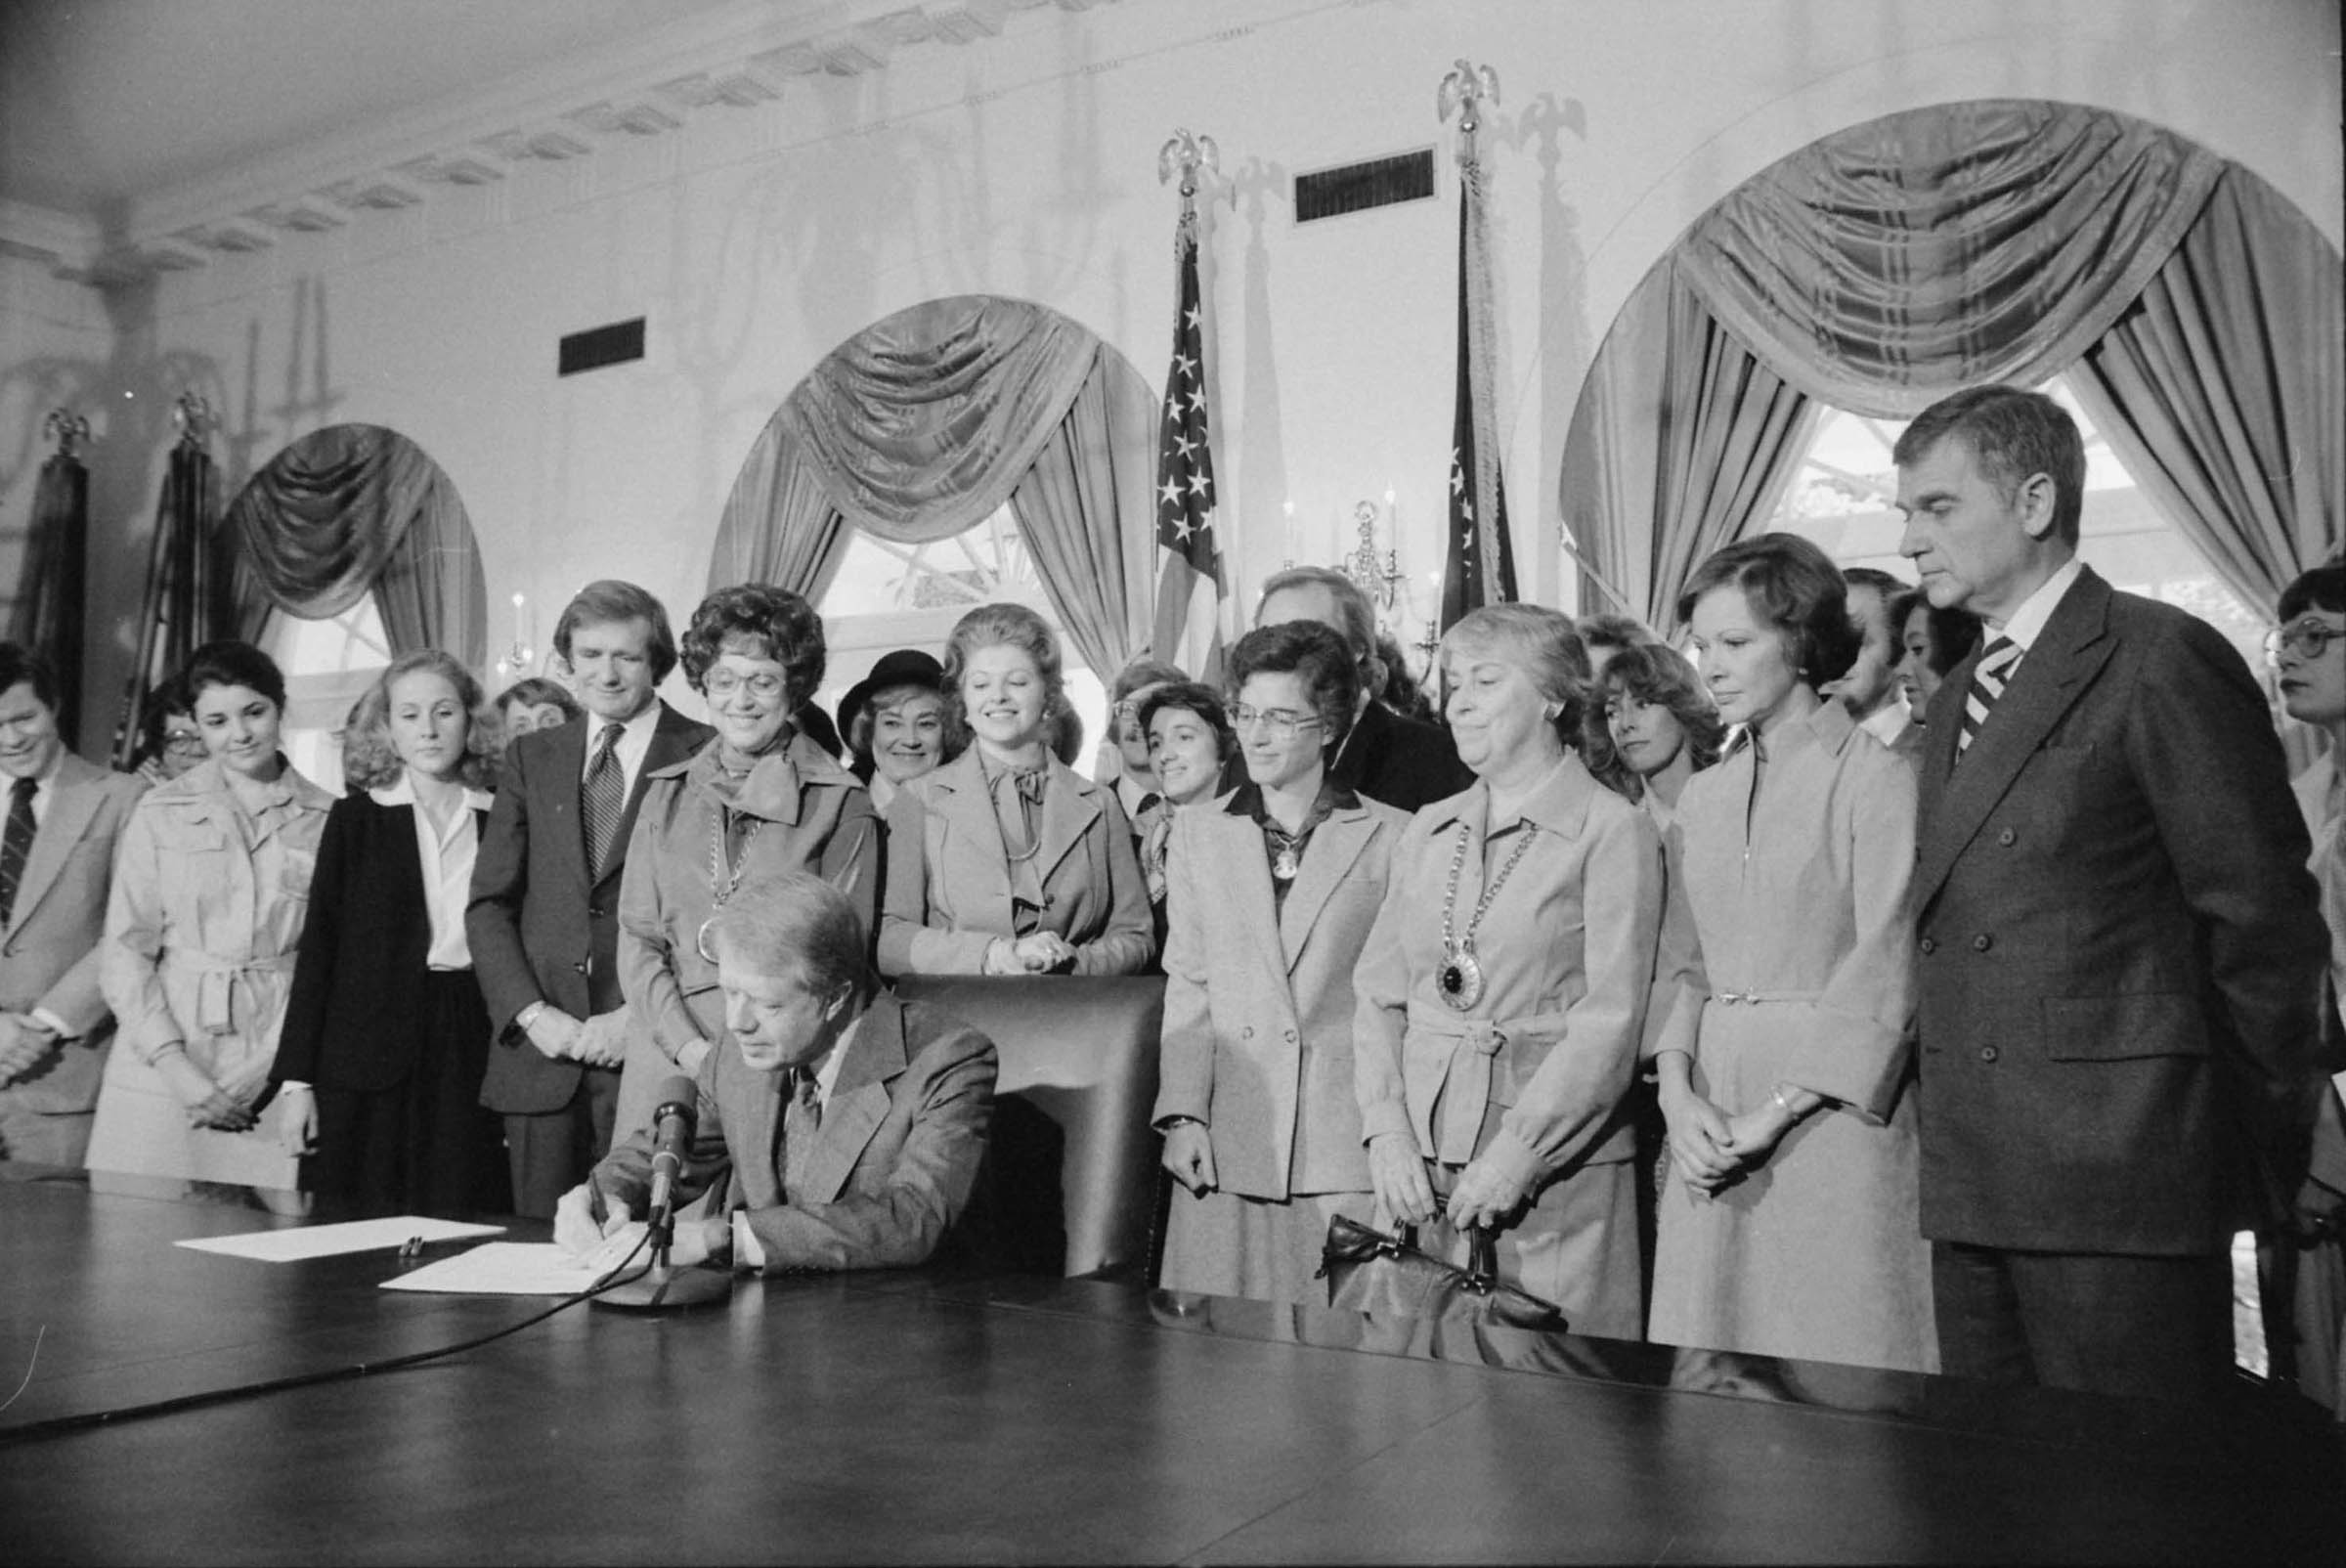 Jimmy Carter sitting down with several women standing behind him